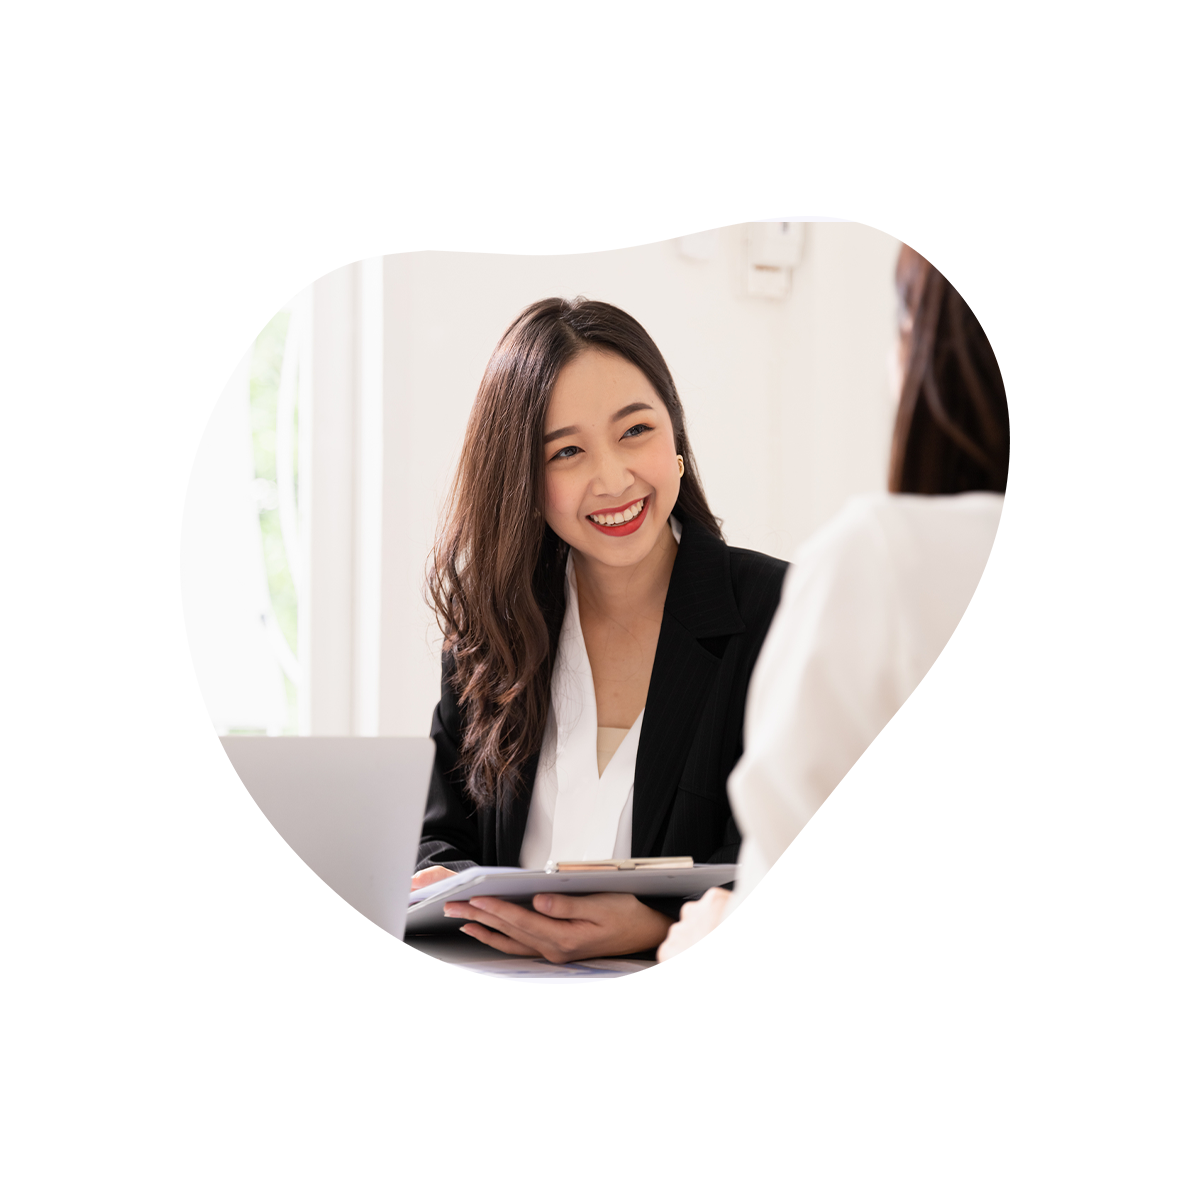 Accounting - Business women smiling